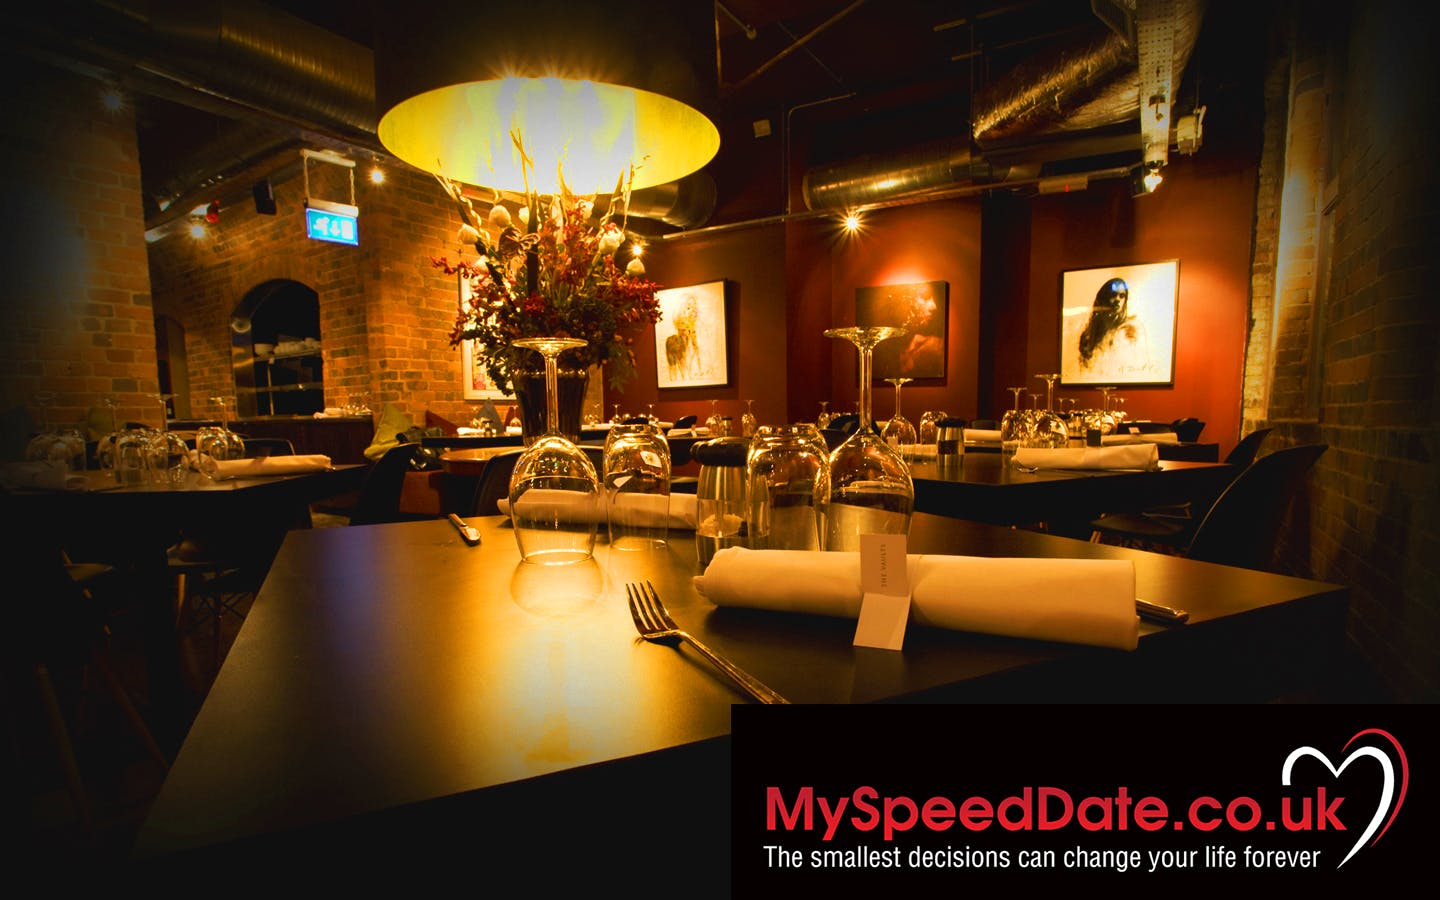 Speed Dating Birmingham ages 26-38 (guide